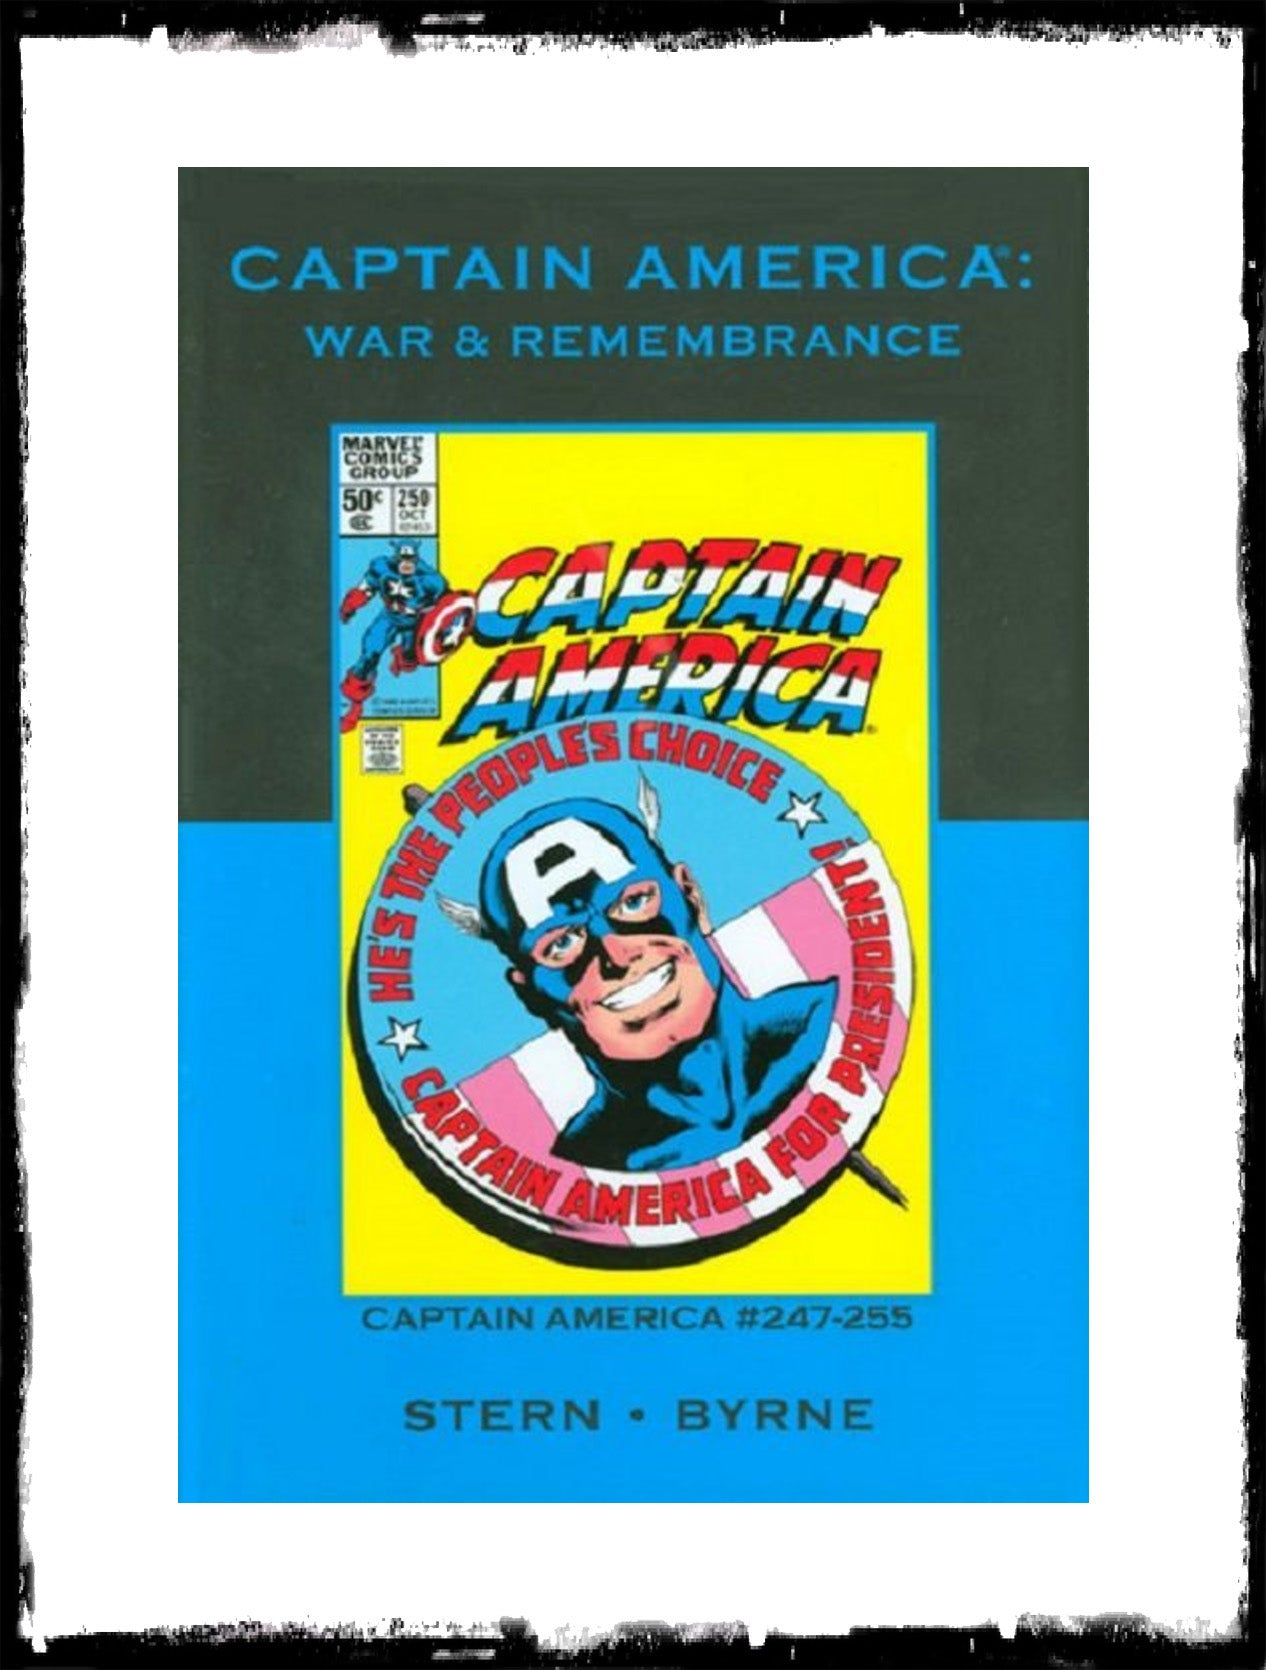 CAPTAIN AMERICA: WAR & REMEMBRANCE - HARDCOVER